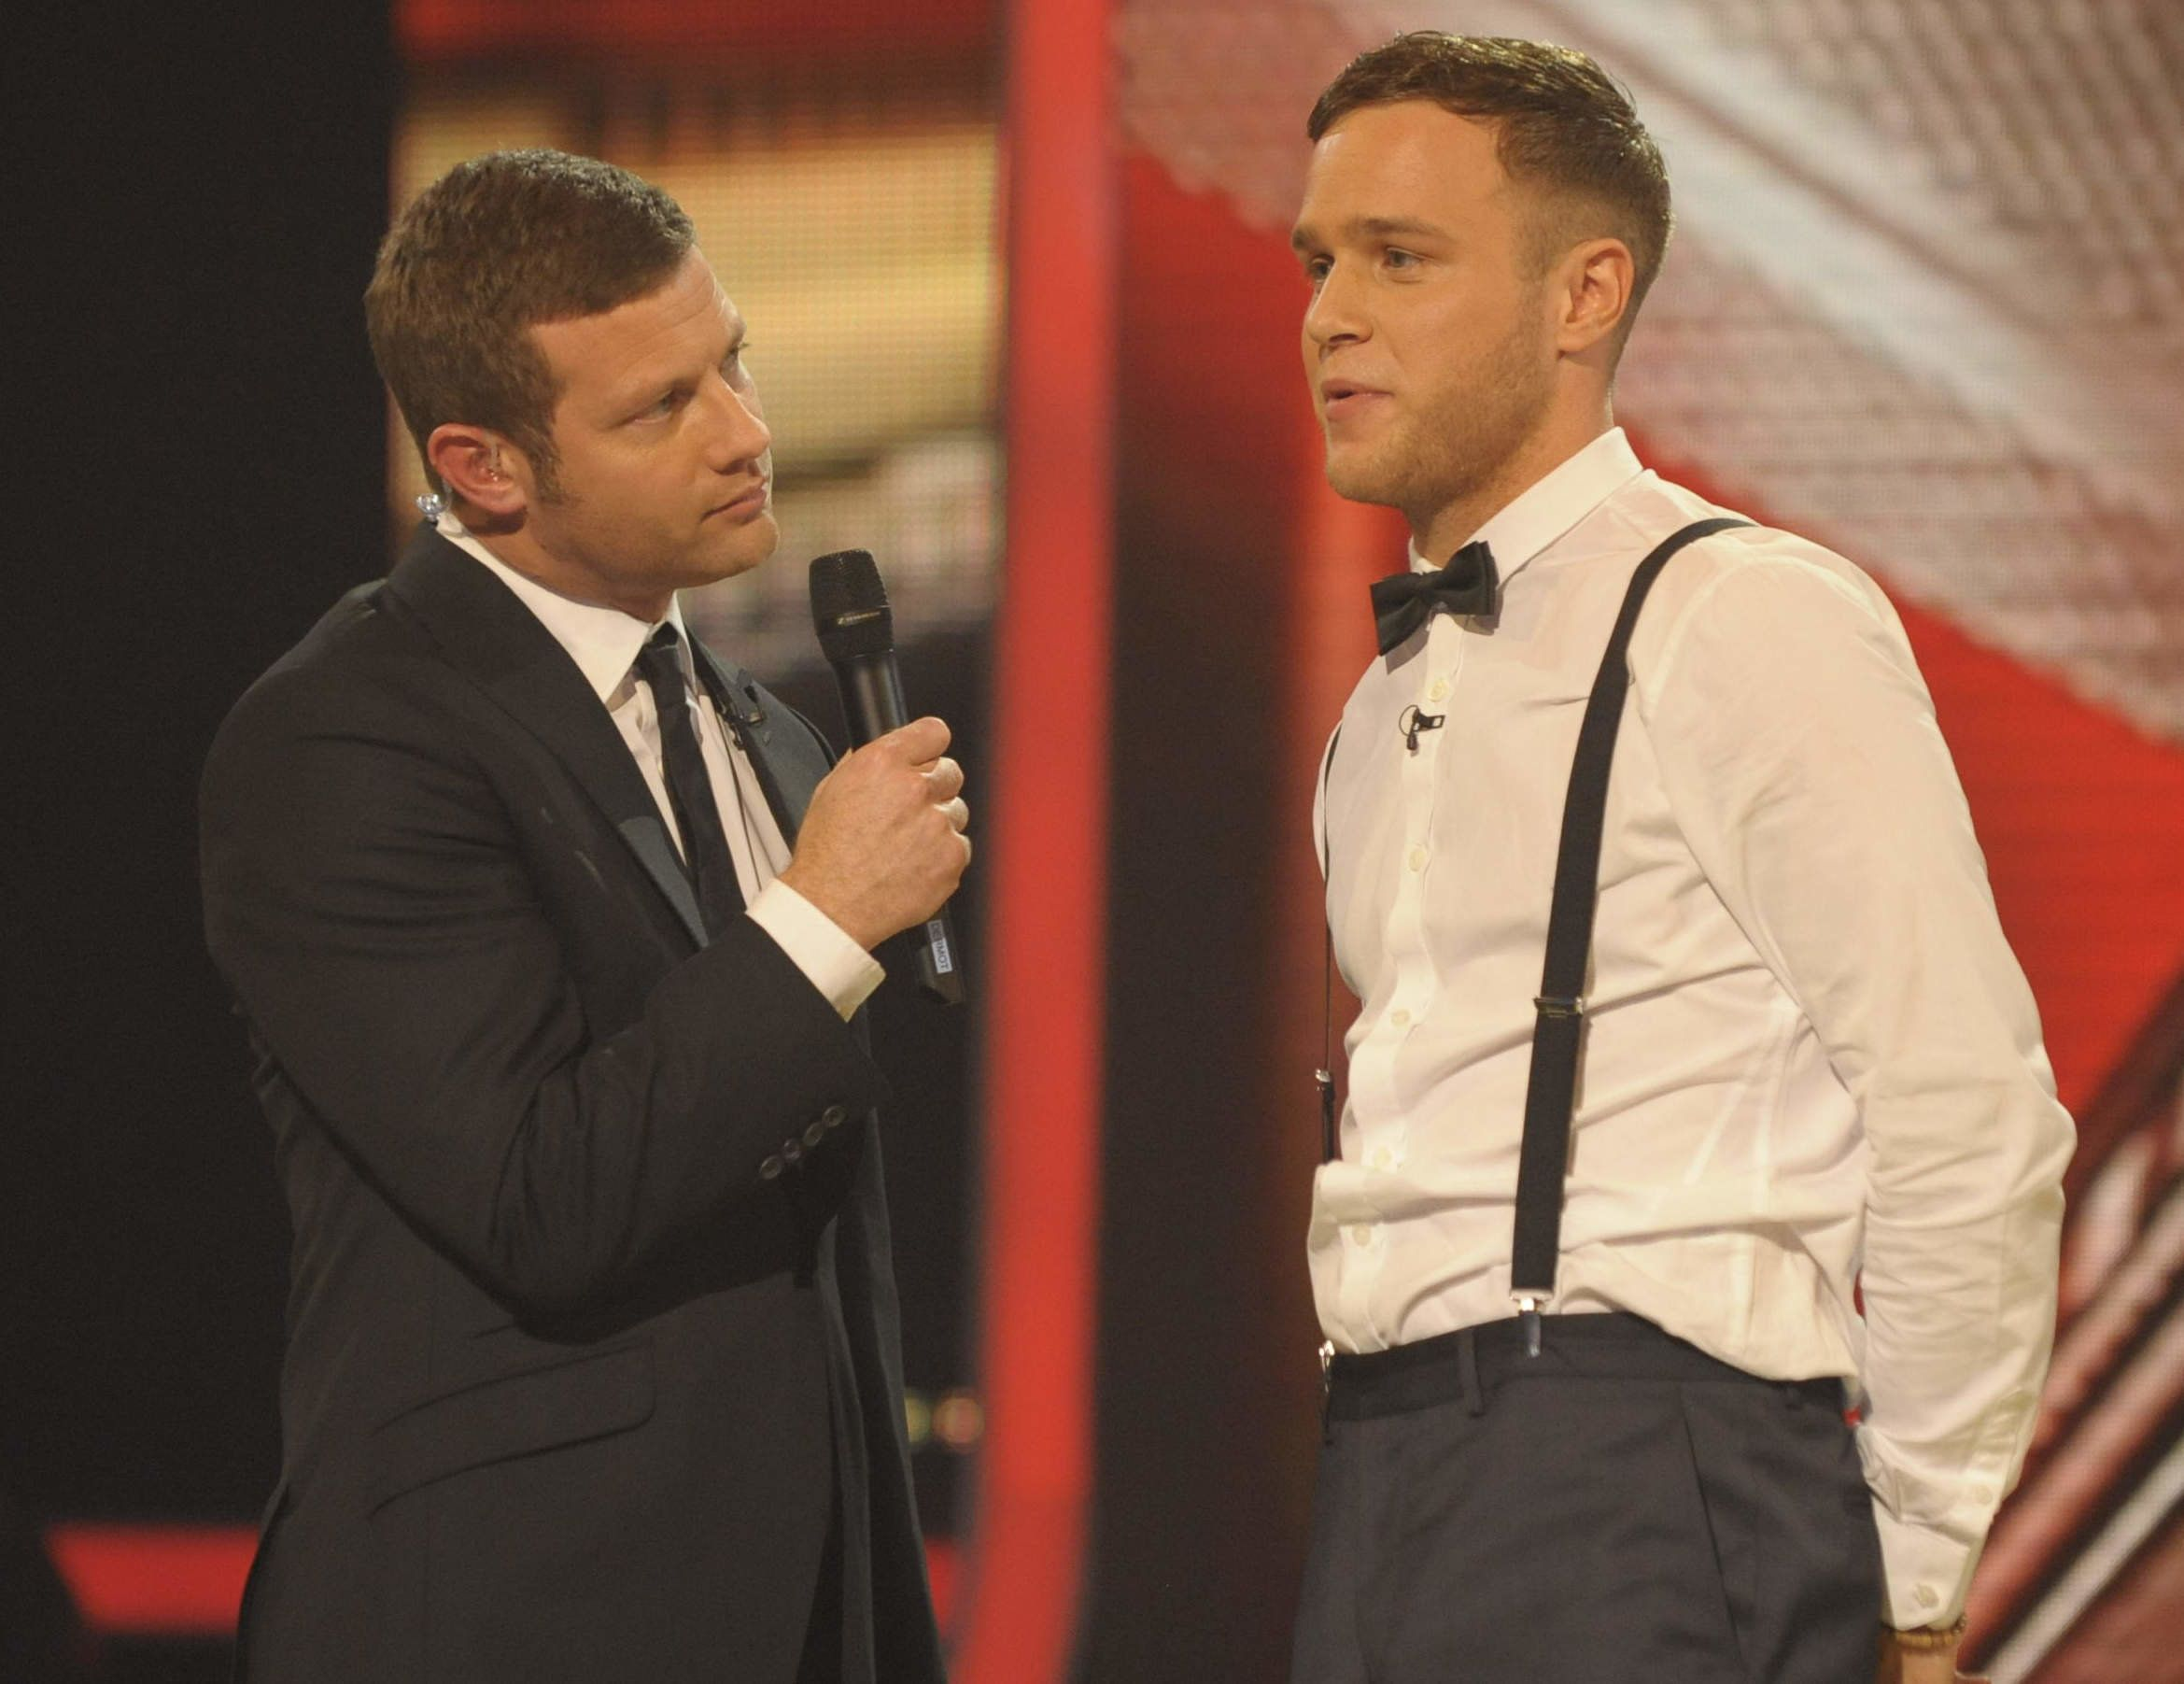 Olly Murs is in the chair… on The Voice!